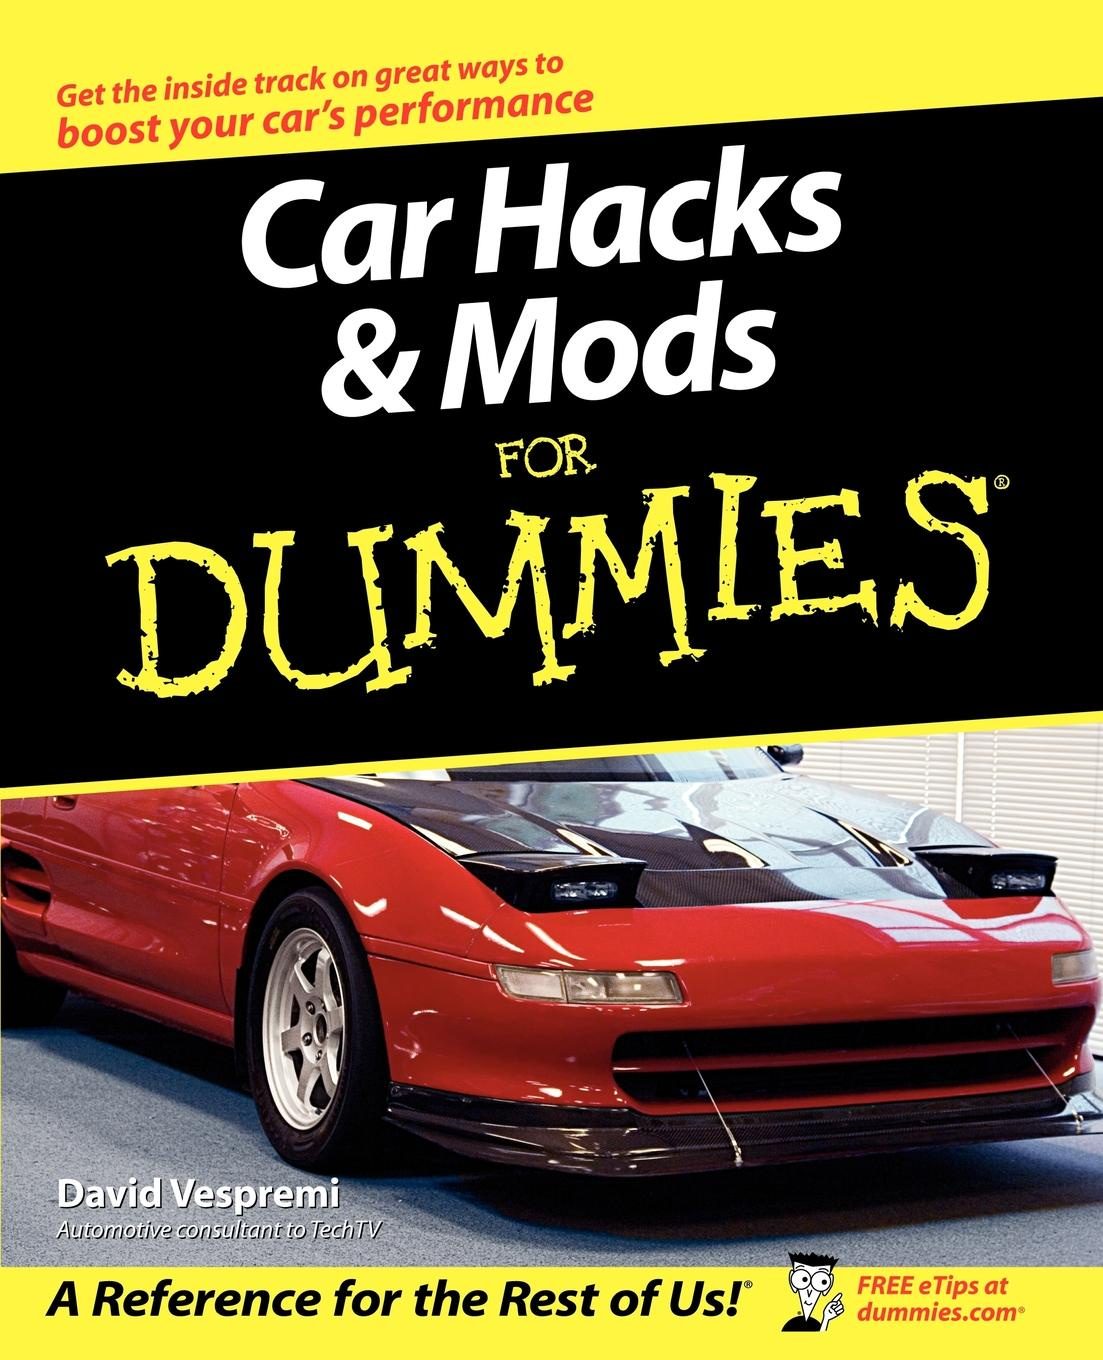 Vespremi Car Hacks Mods For Dummies mods shop интернет магазин